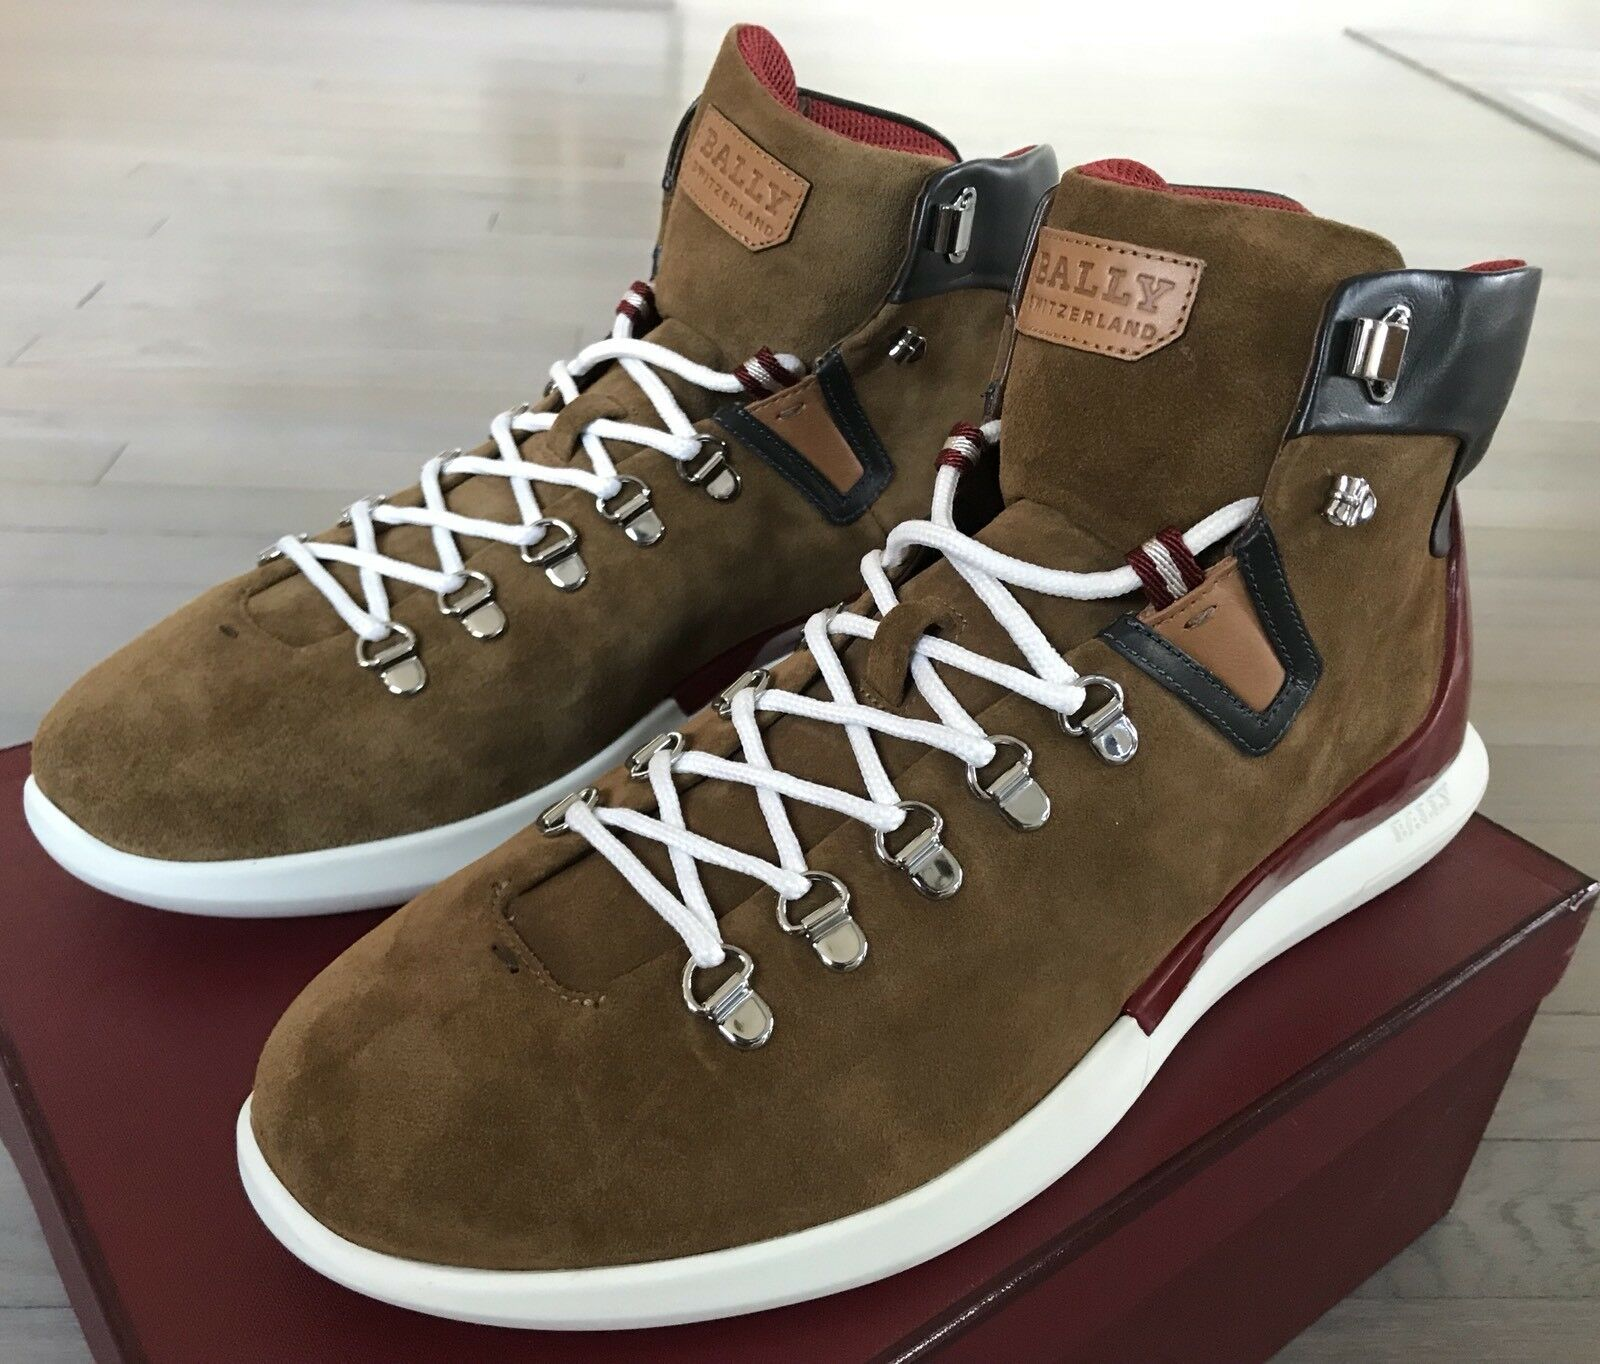 700  Bally Avyd Khaki Suede High Tops Sneakers size US 9 Made in